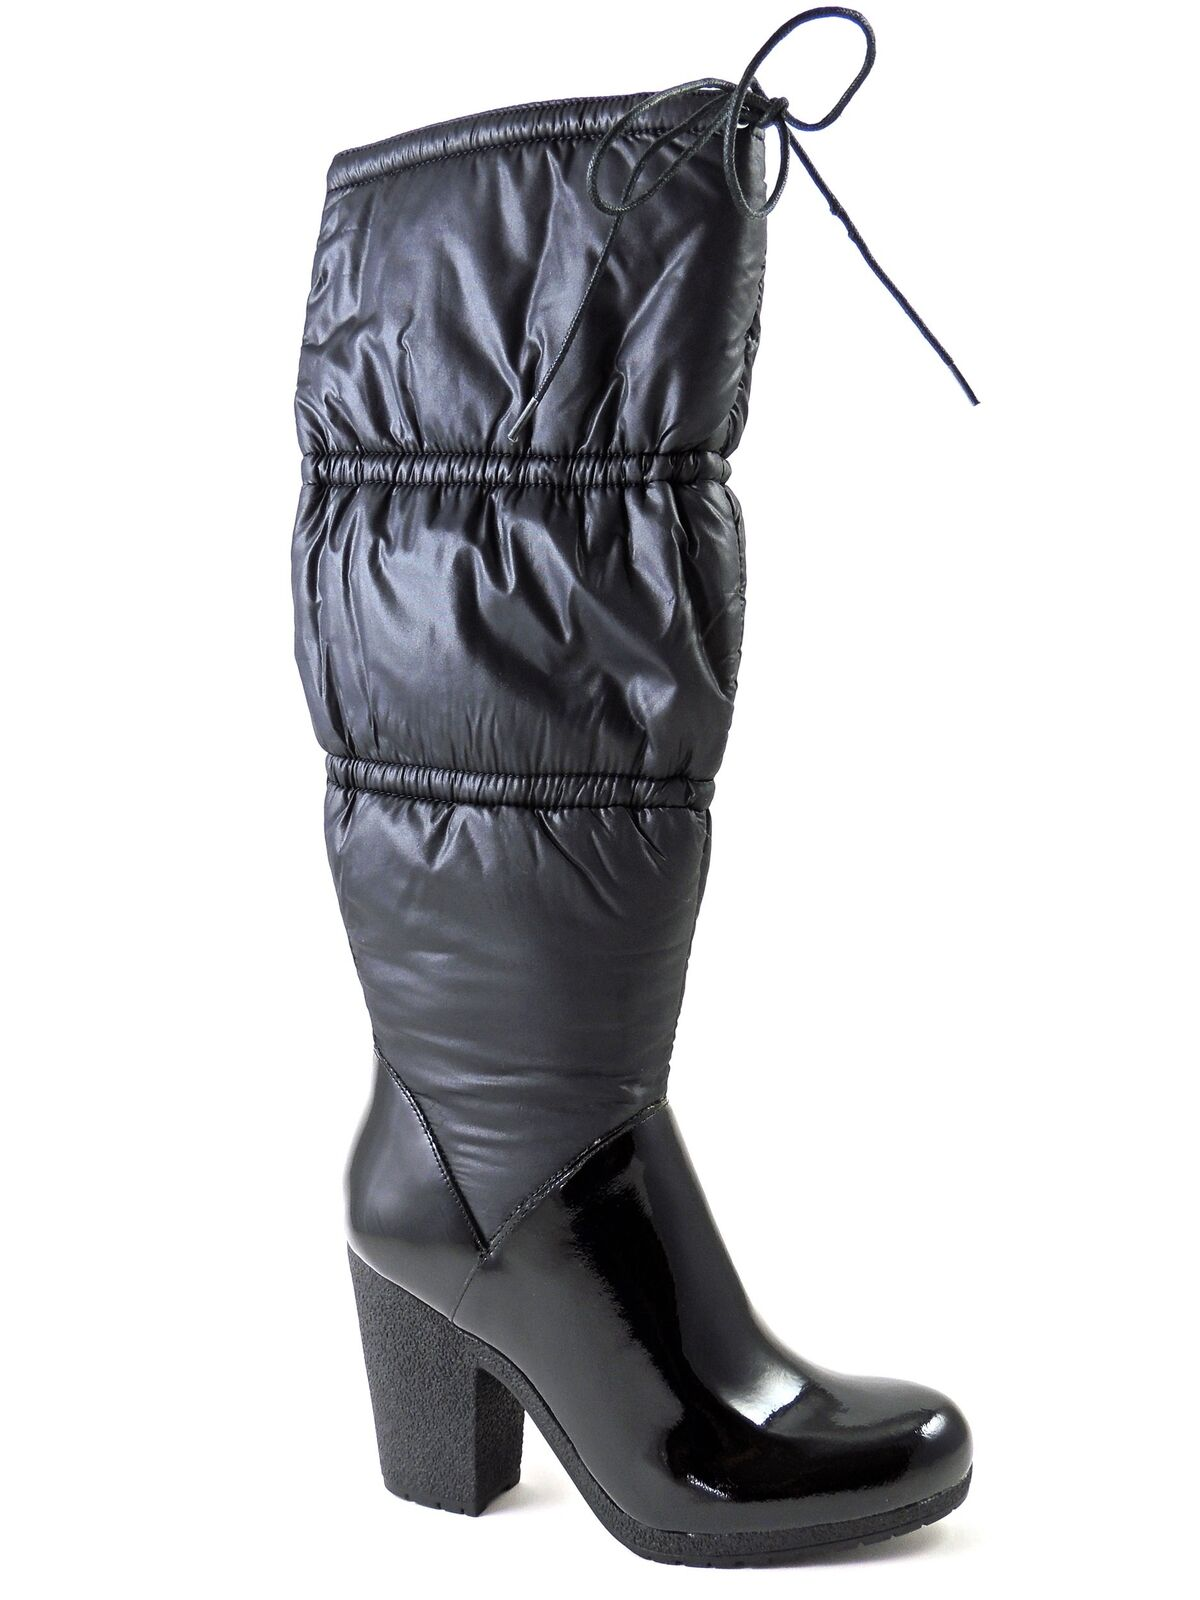 Angiolini Enzo Women's Handler Winter Boots Black Leather & Textile Size 6 M